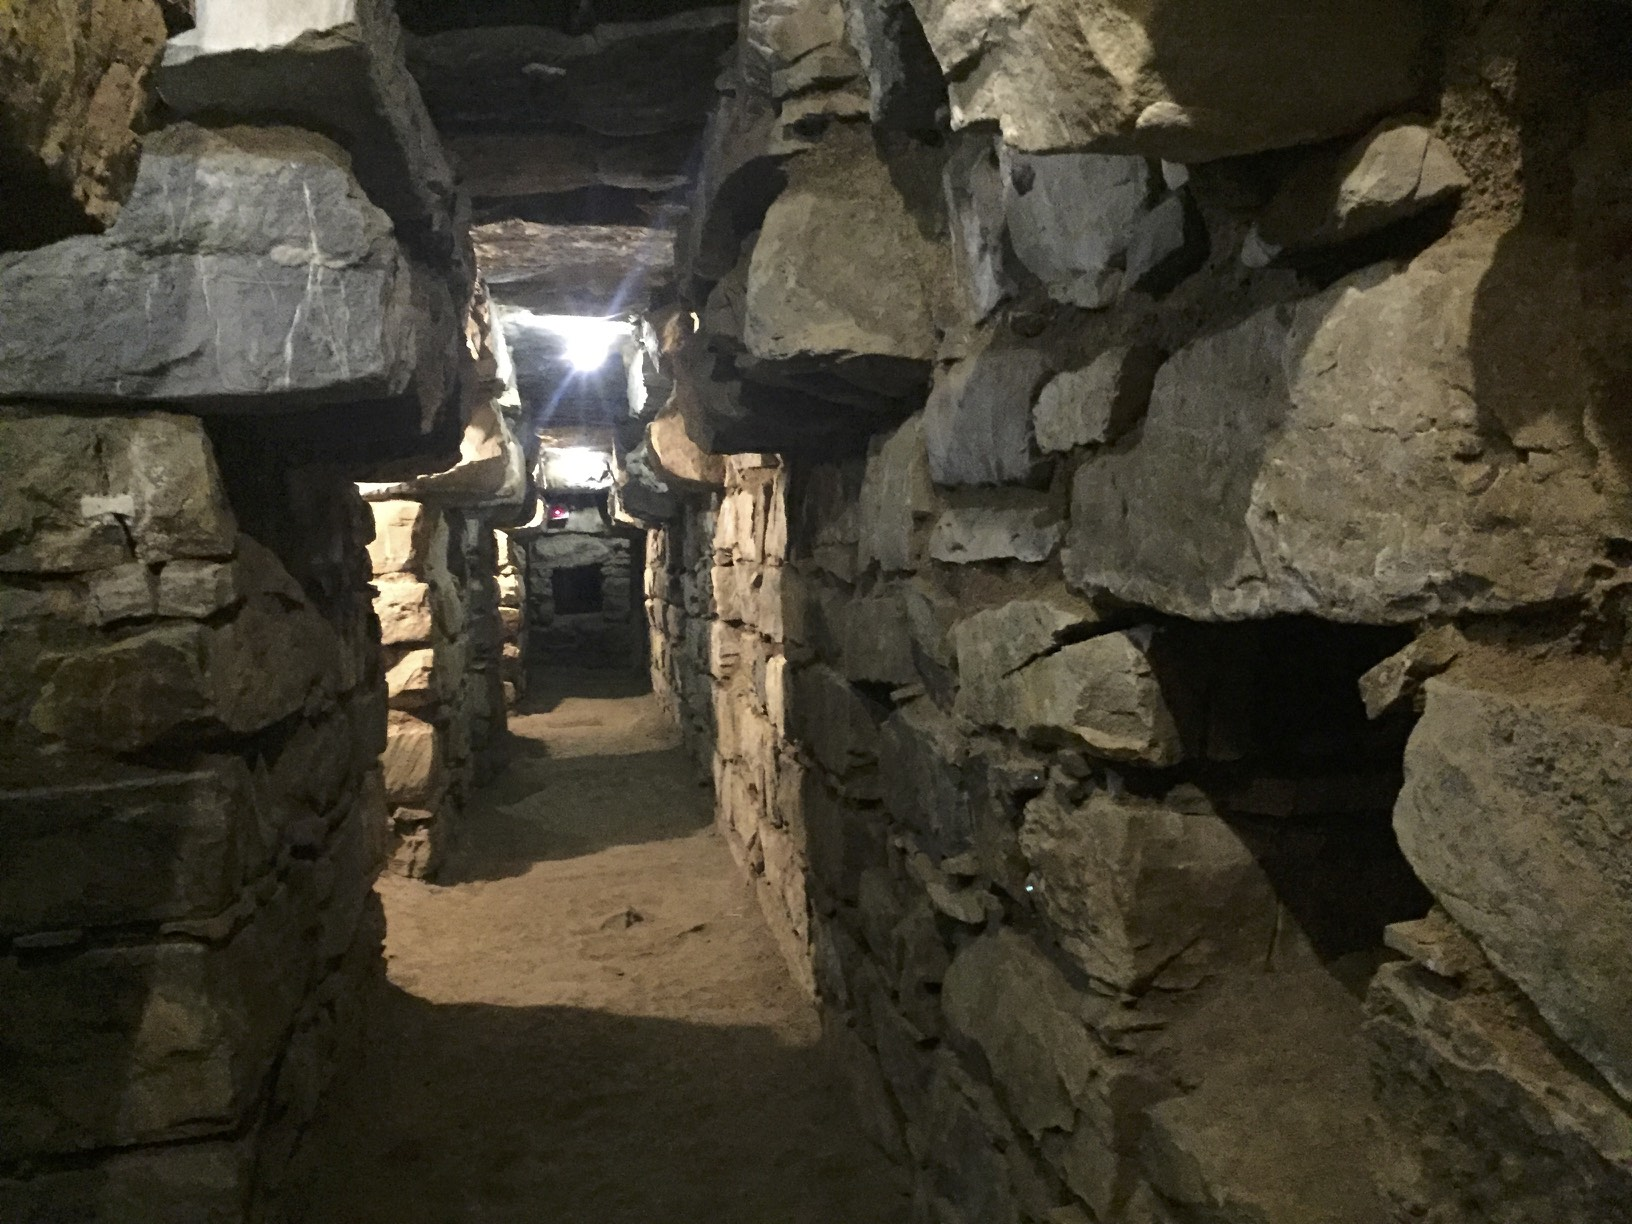 The underground caverns of Chavin - the realm of high priests and drug induced ceremonies